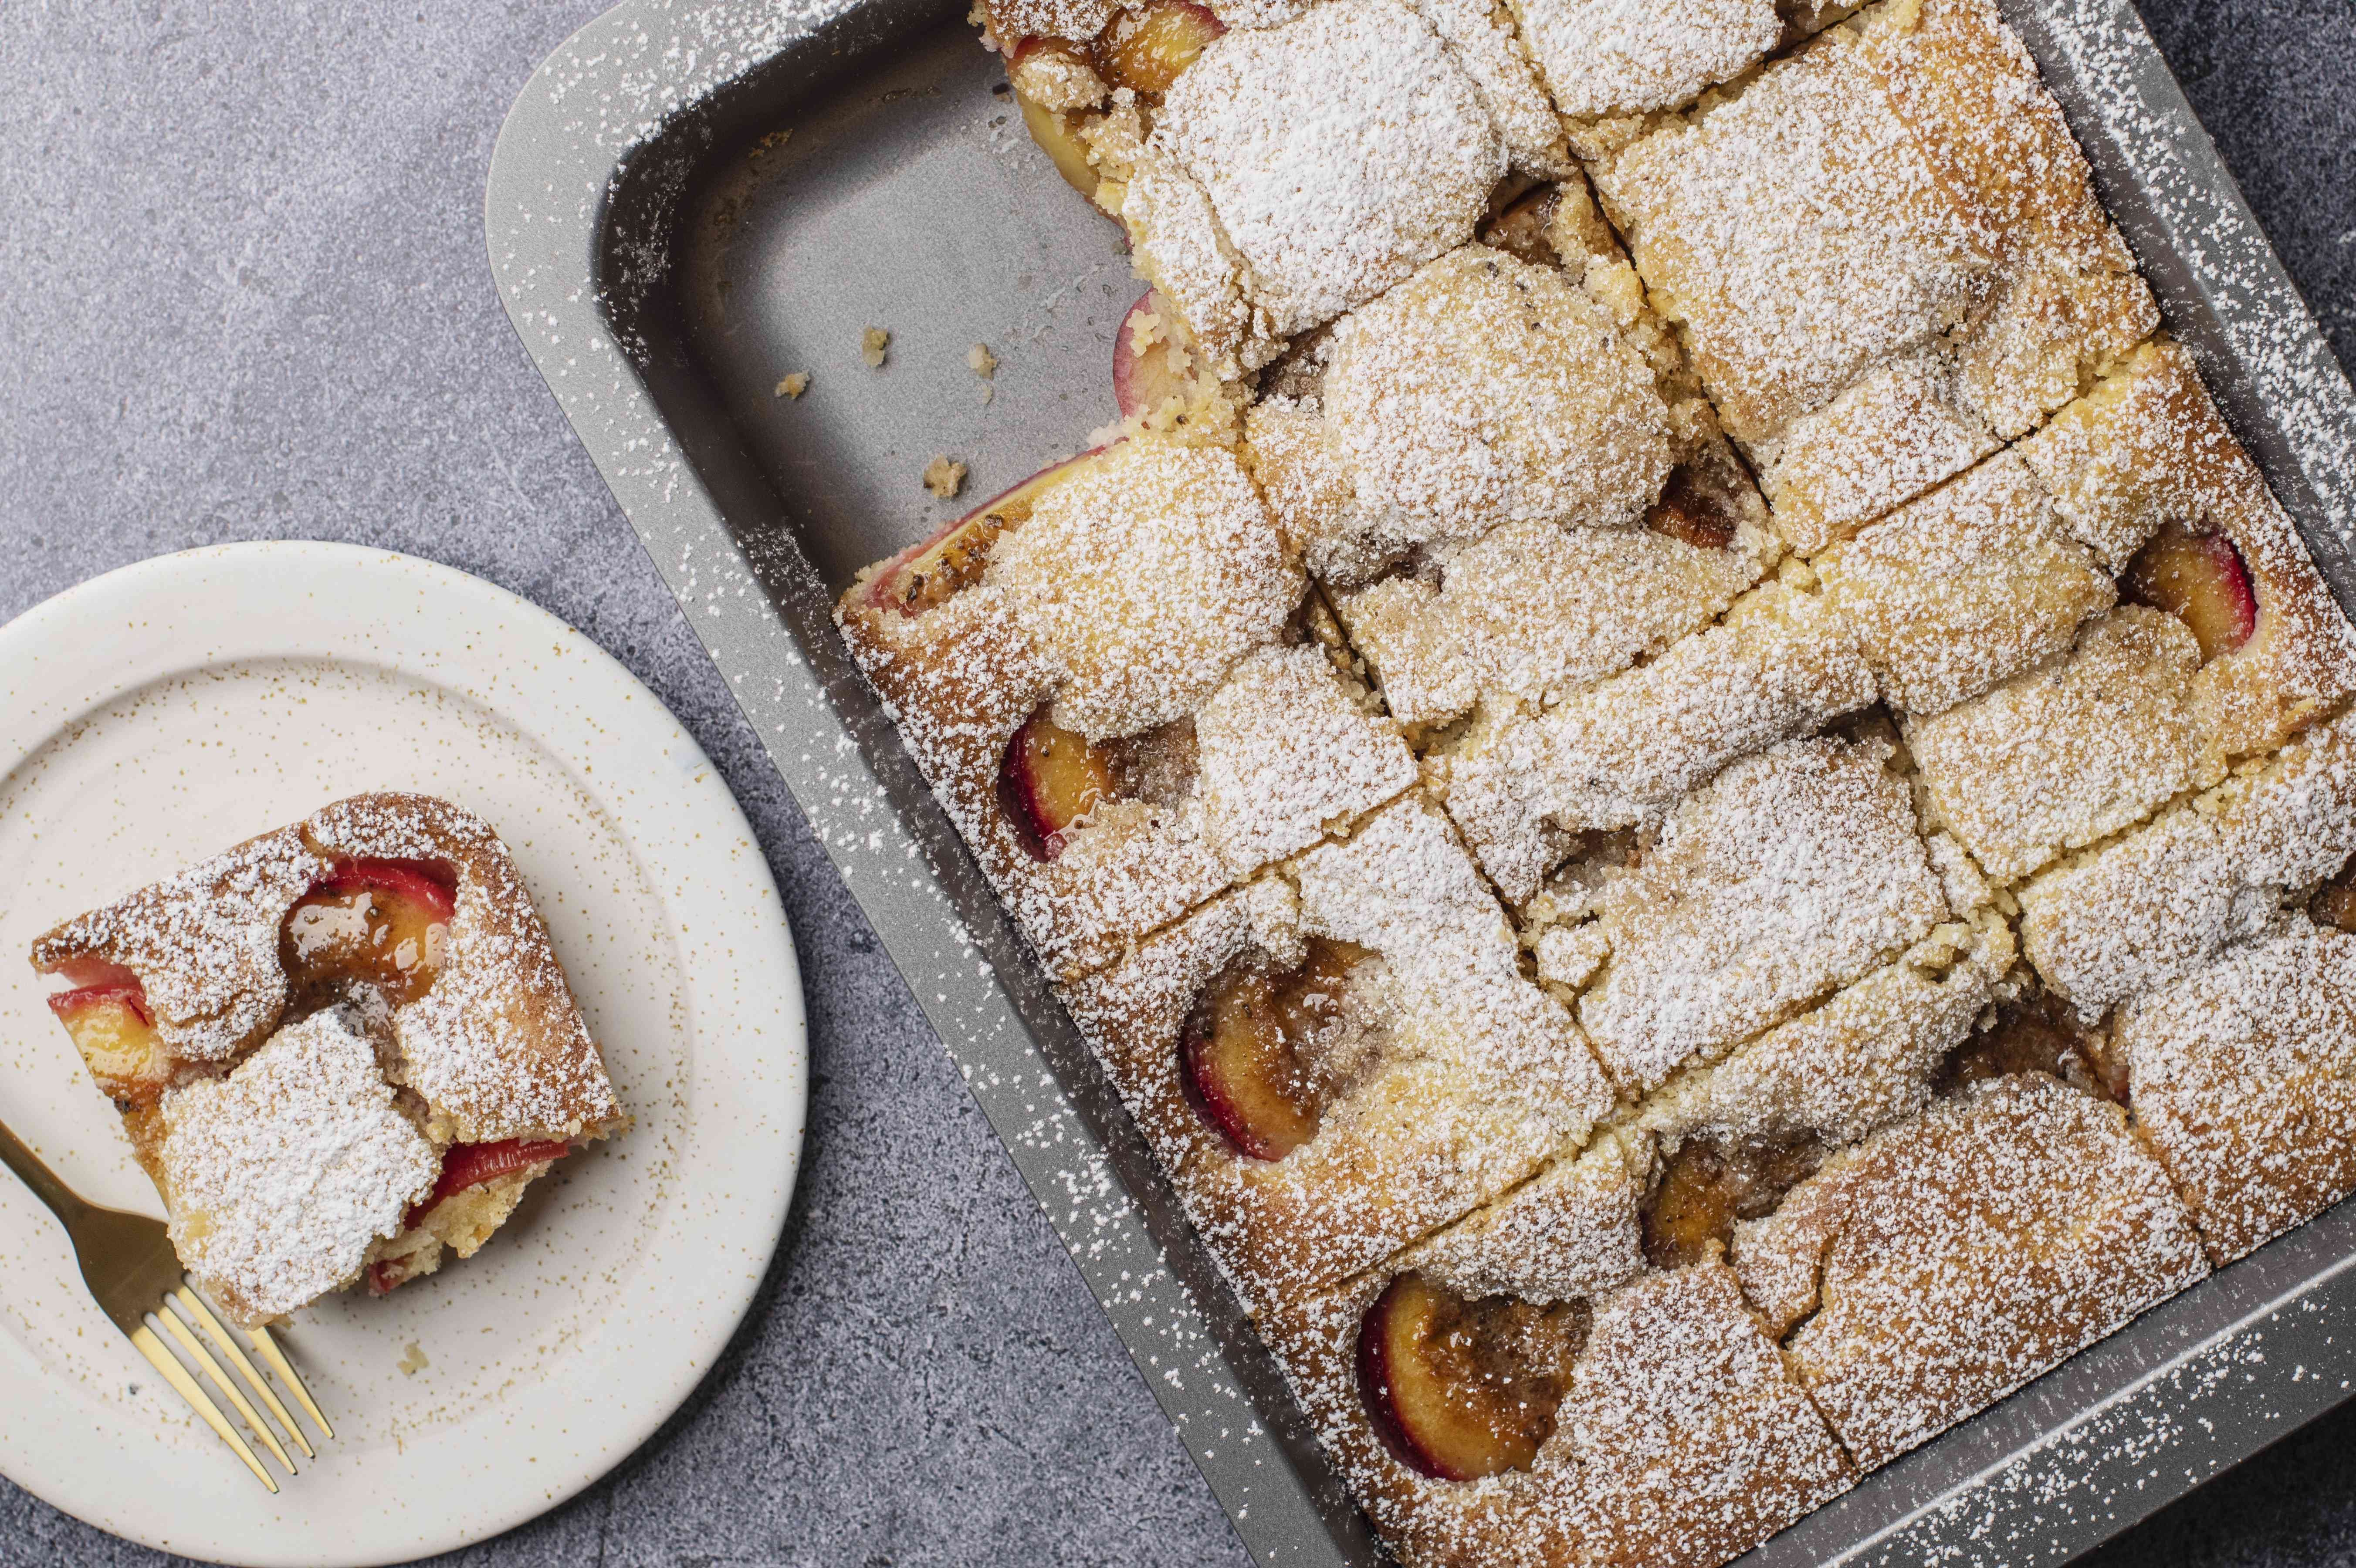 Polish plum cake dusted with powdered sugar and cut into 12 squares